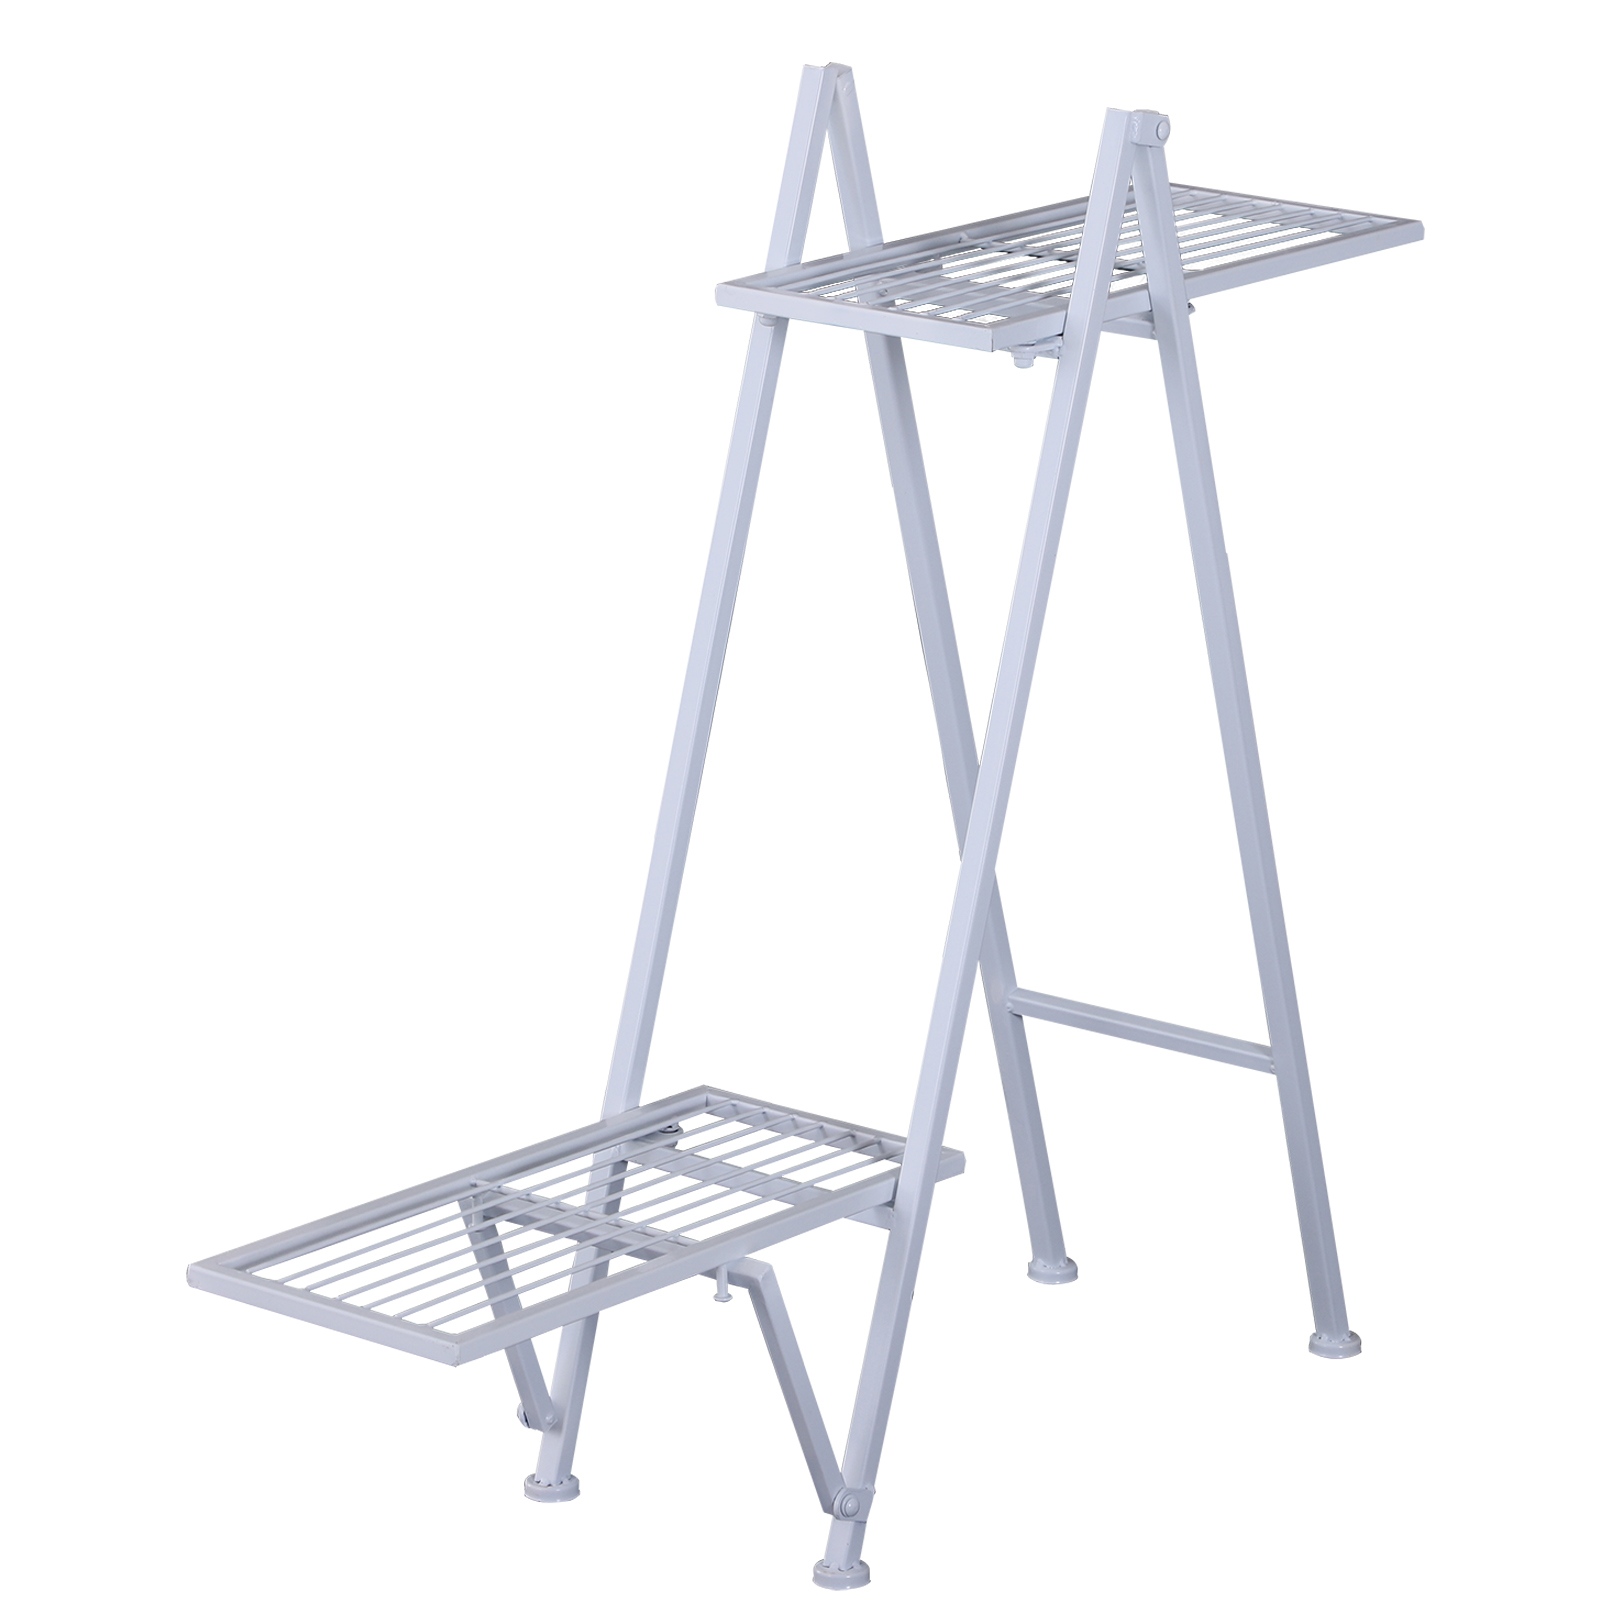 Outsunny Planter Stand Holder 2 Shelves For Home And Garden Plants Metal 86x24x81 Cm White